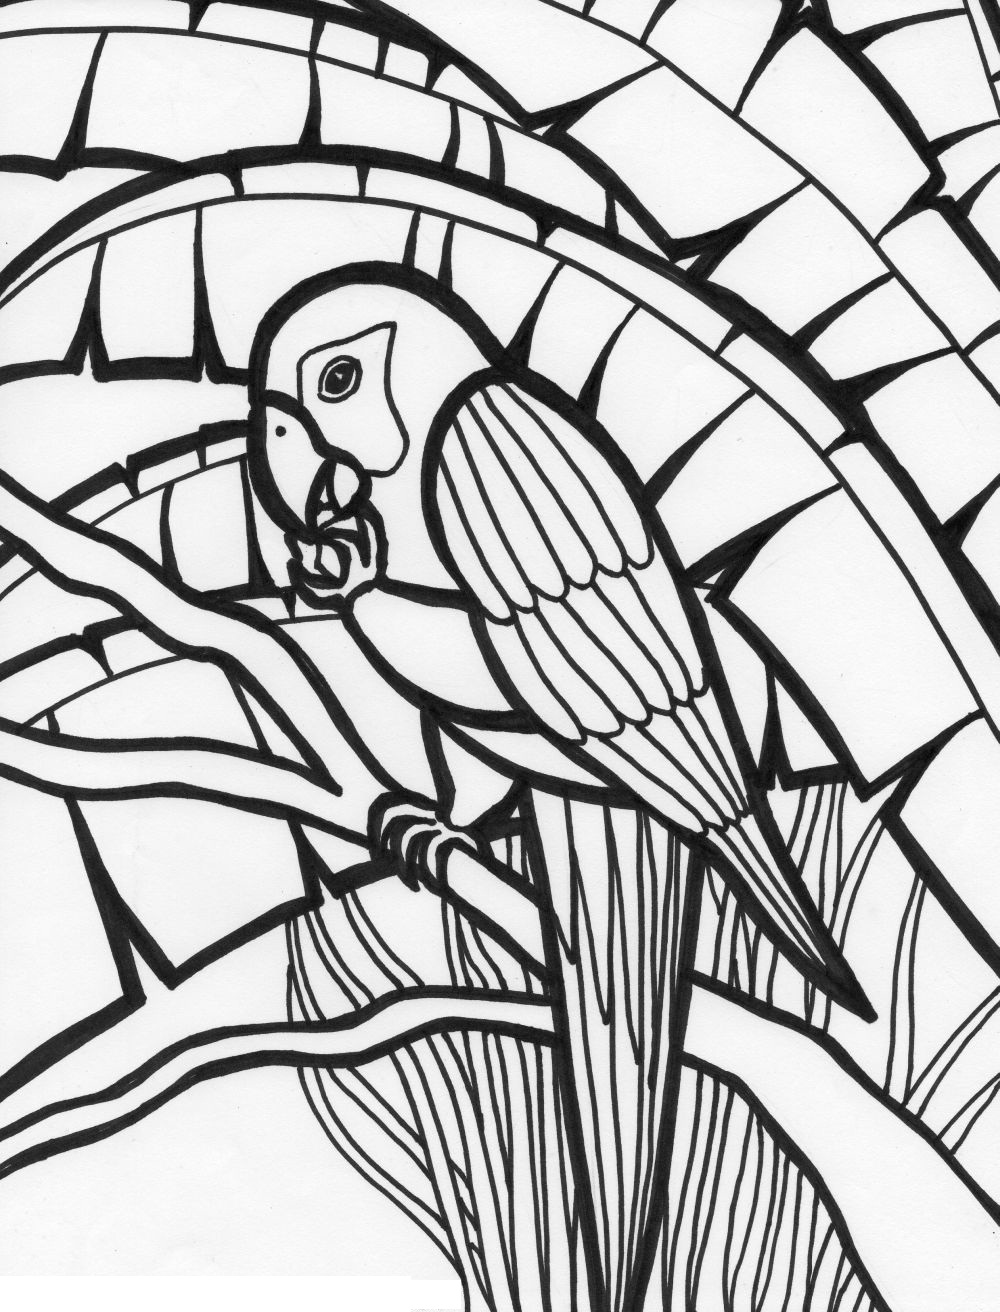 coloring pages of parrots free printable parrot coloring pages for kids coloring of parrots pages